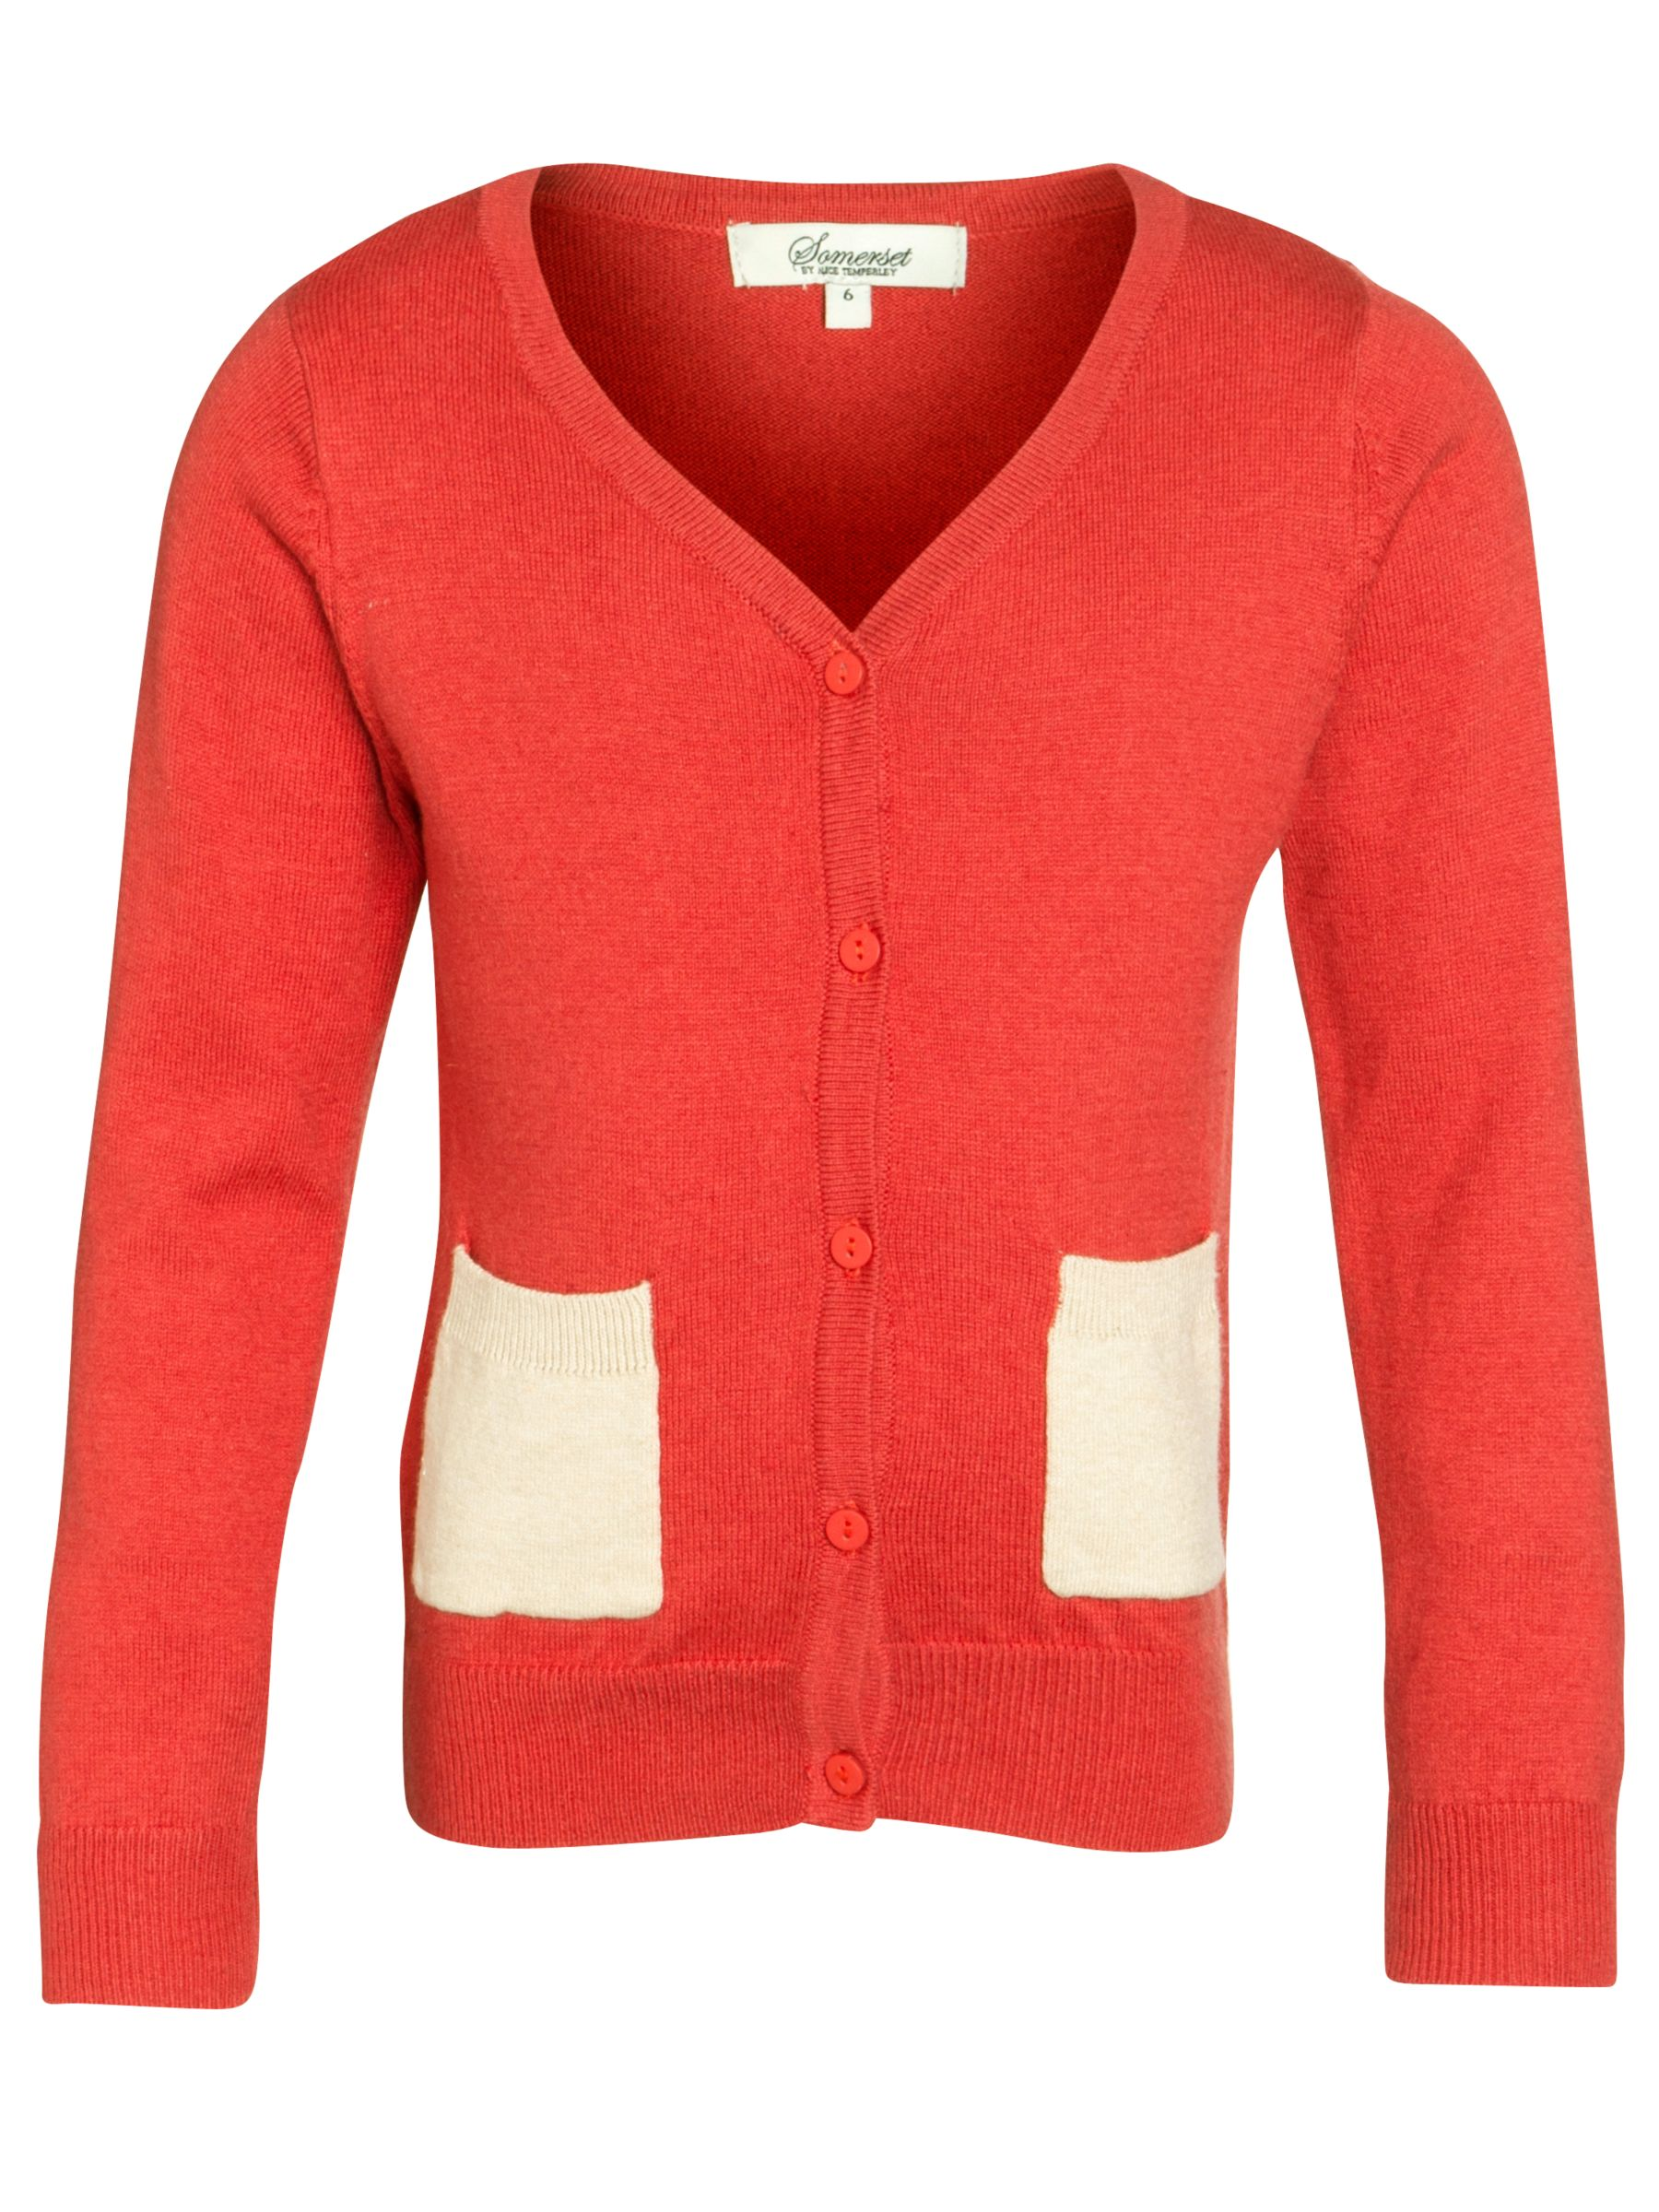 Best cashmere cardigan prices in Girls' Clothes online